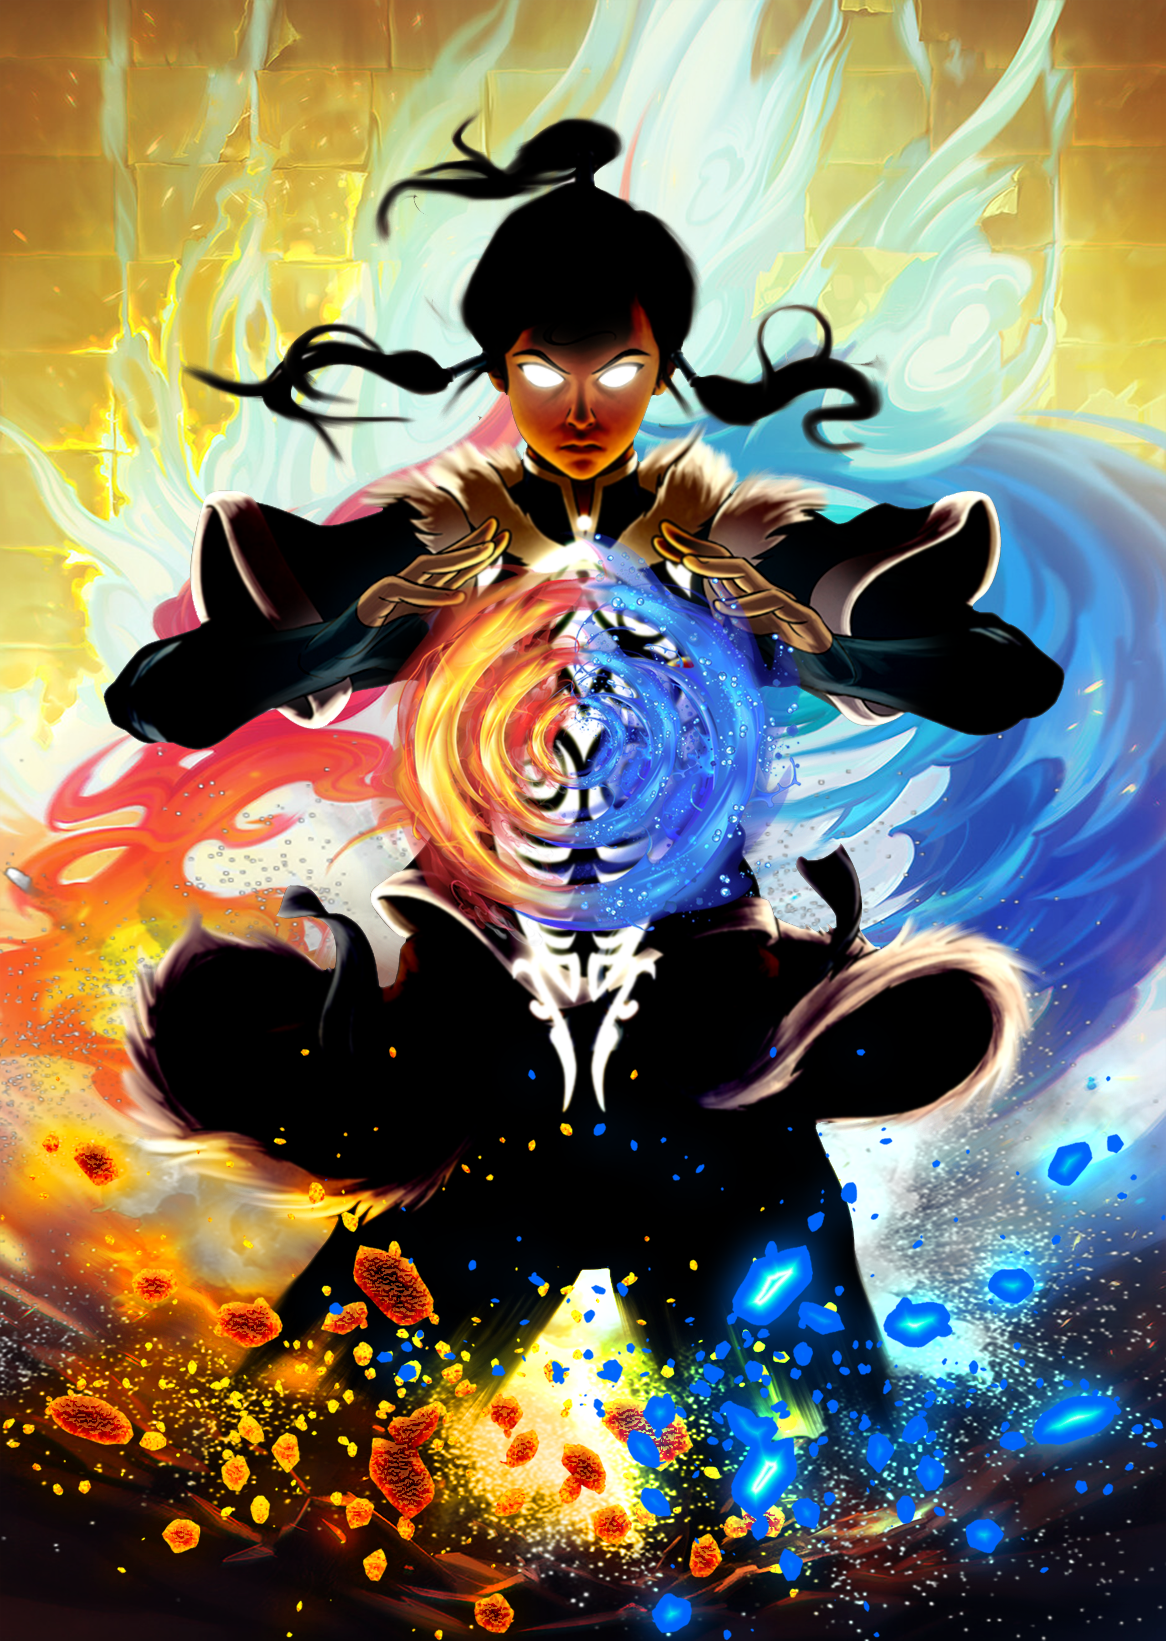 These Avatar The Last Airbender Posters Have All Elements The Last Airbender Avatar The Last Airbender Art Avatar Airbender